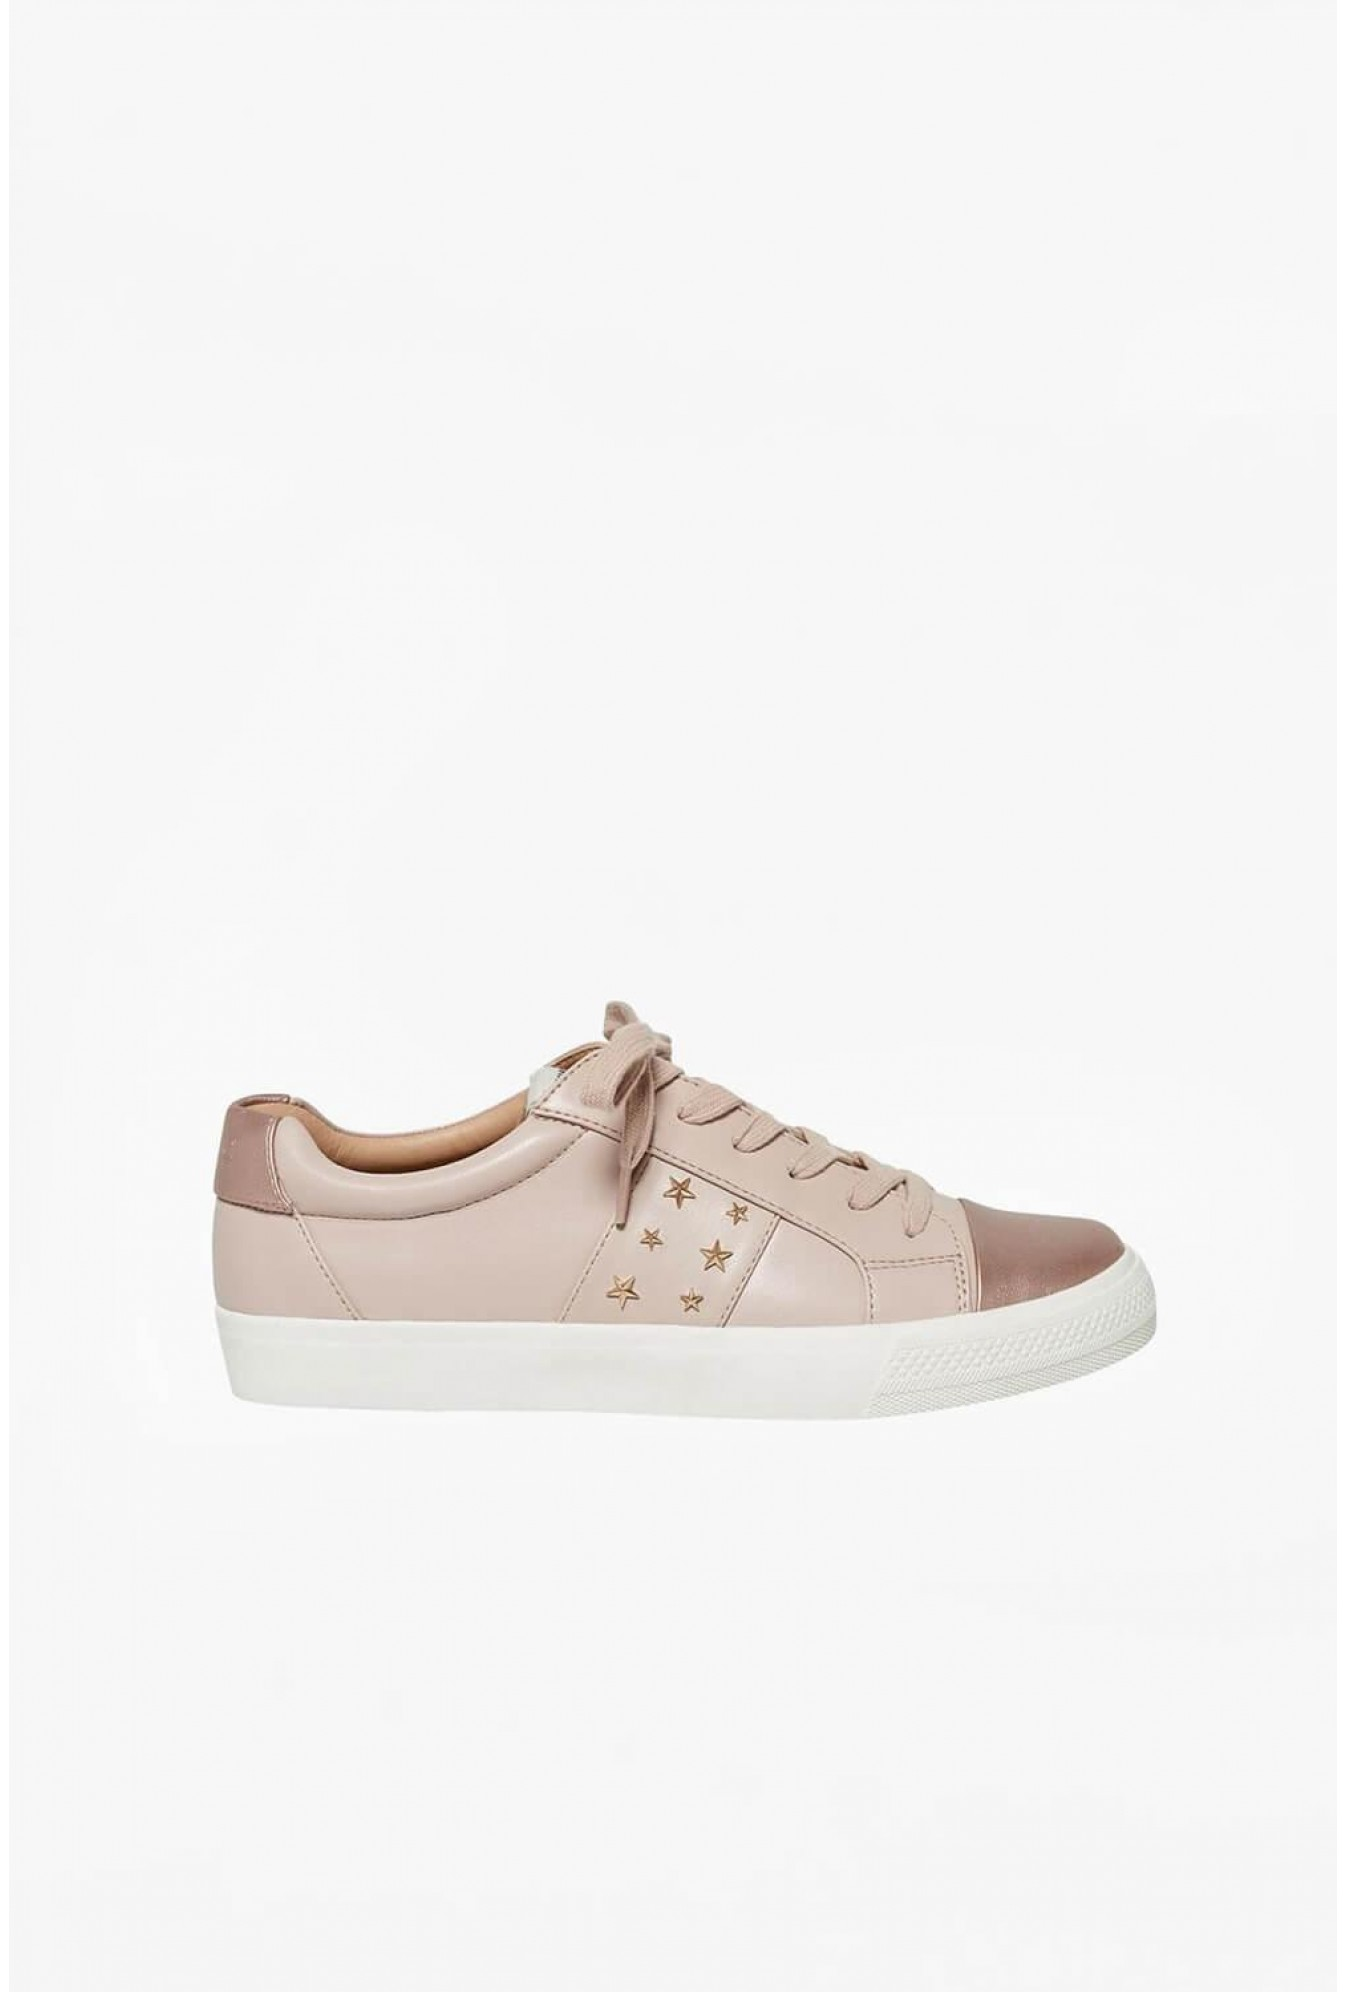 2d780f003b8 Only Skye Lace Up Trainers with Stud Detail in Blush